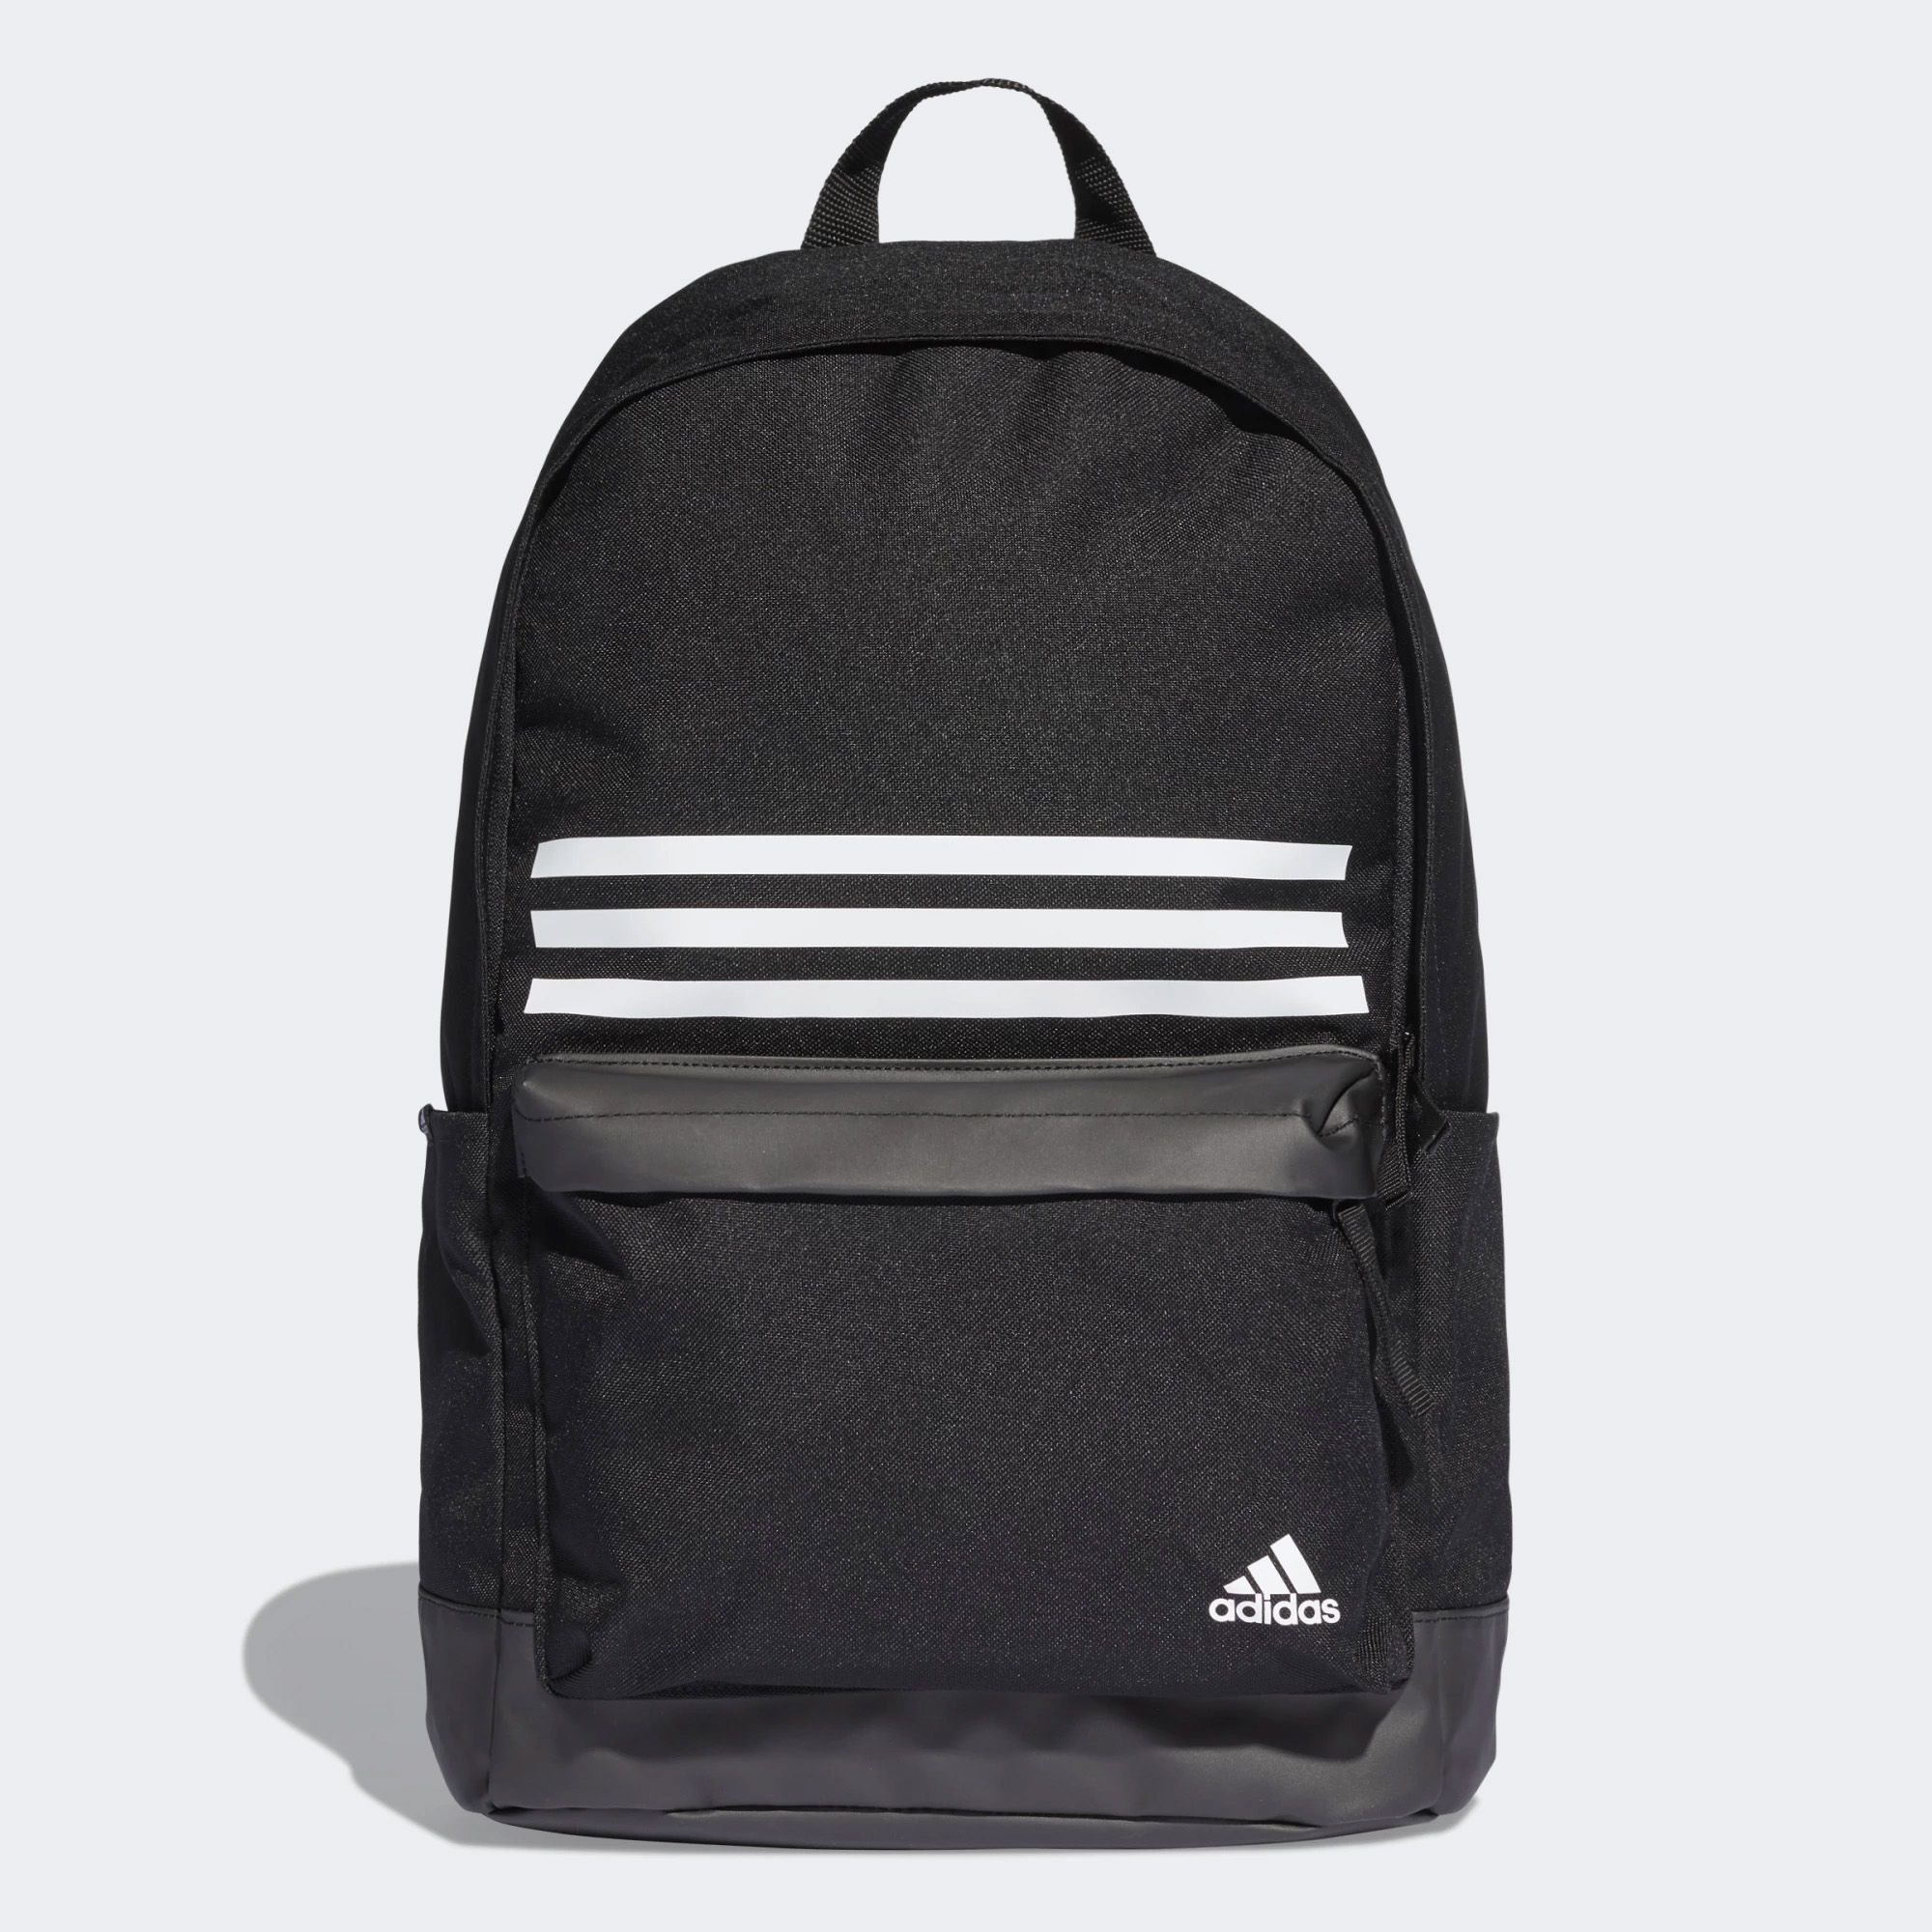 3f62d374e2ca Adidas UK Adidas Classic 3 Stripe Pocket Backpack (dt2616) in Black White